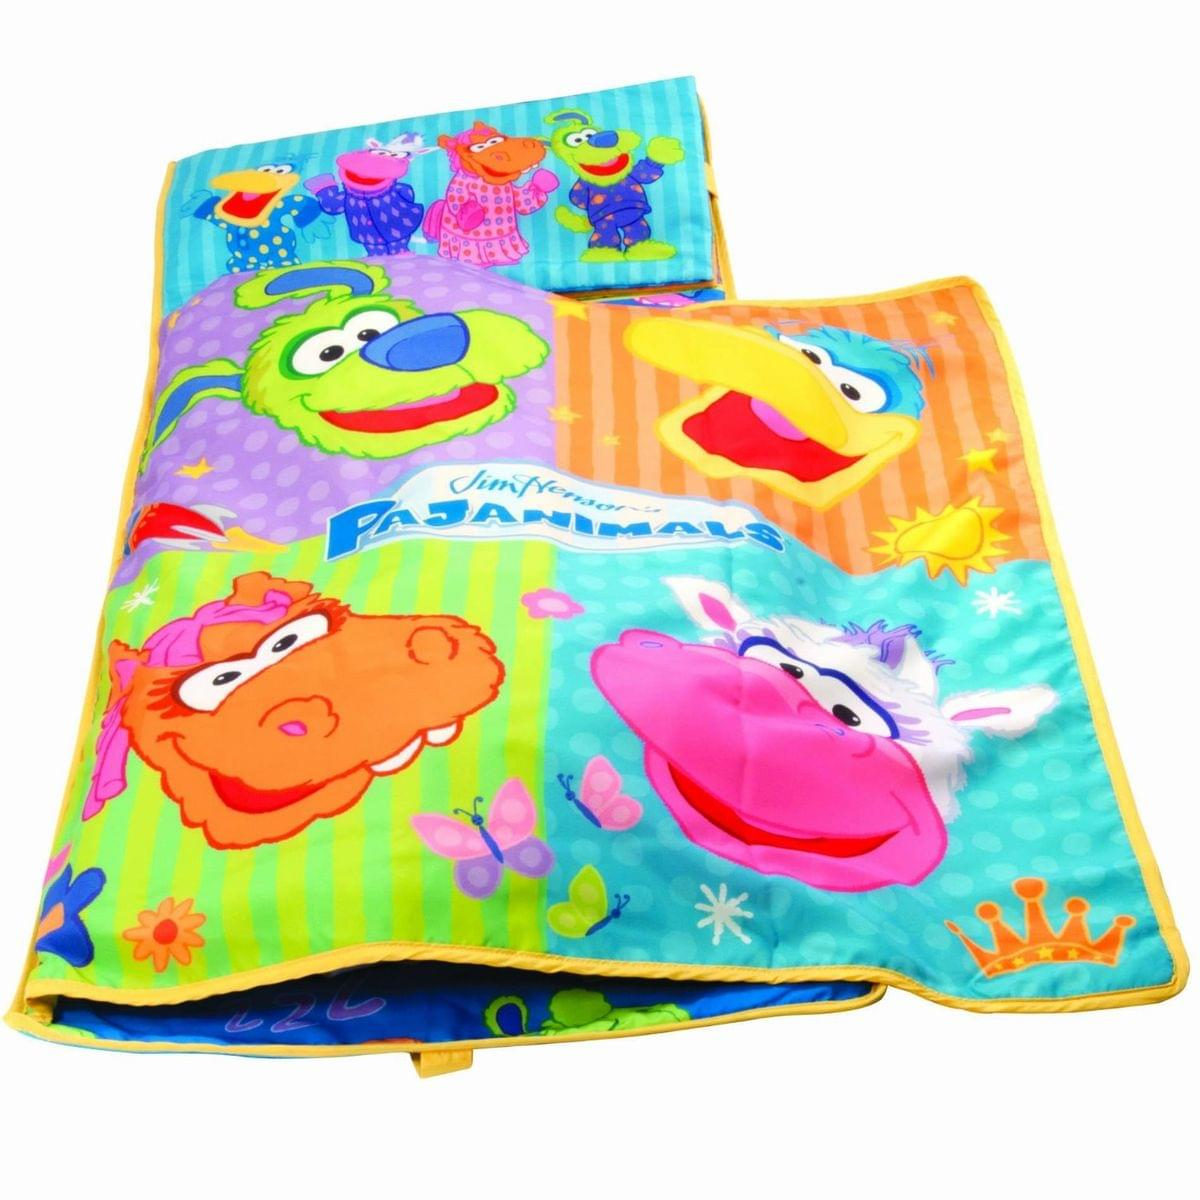 Jim Hensons Pajaminals Snuggle Up Story Mat